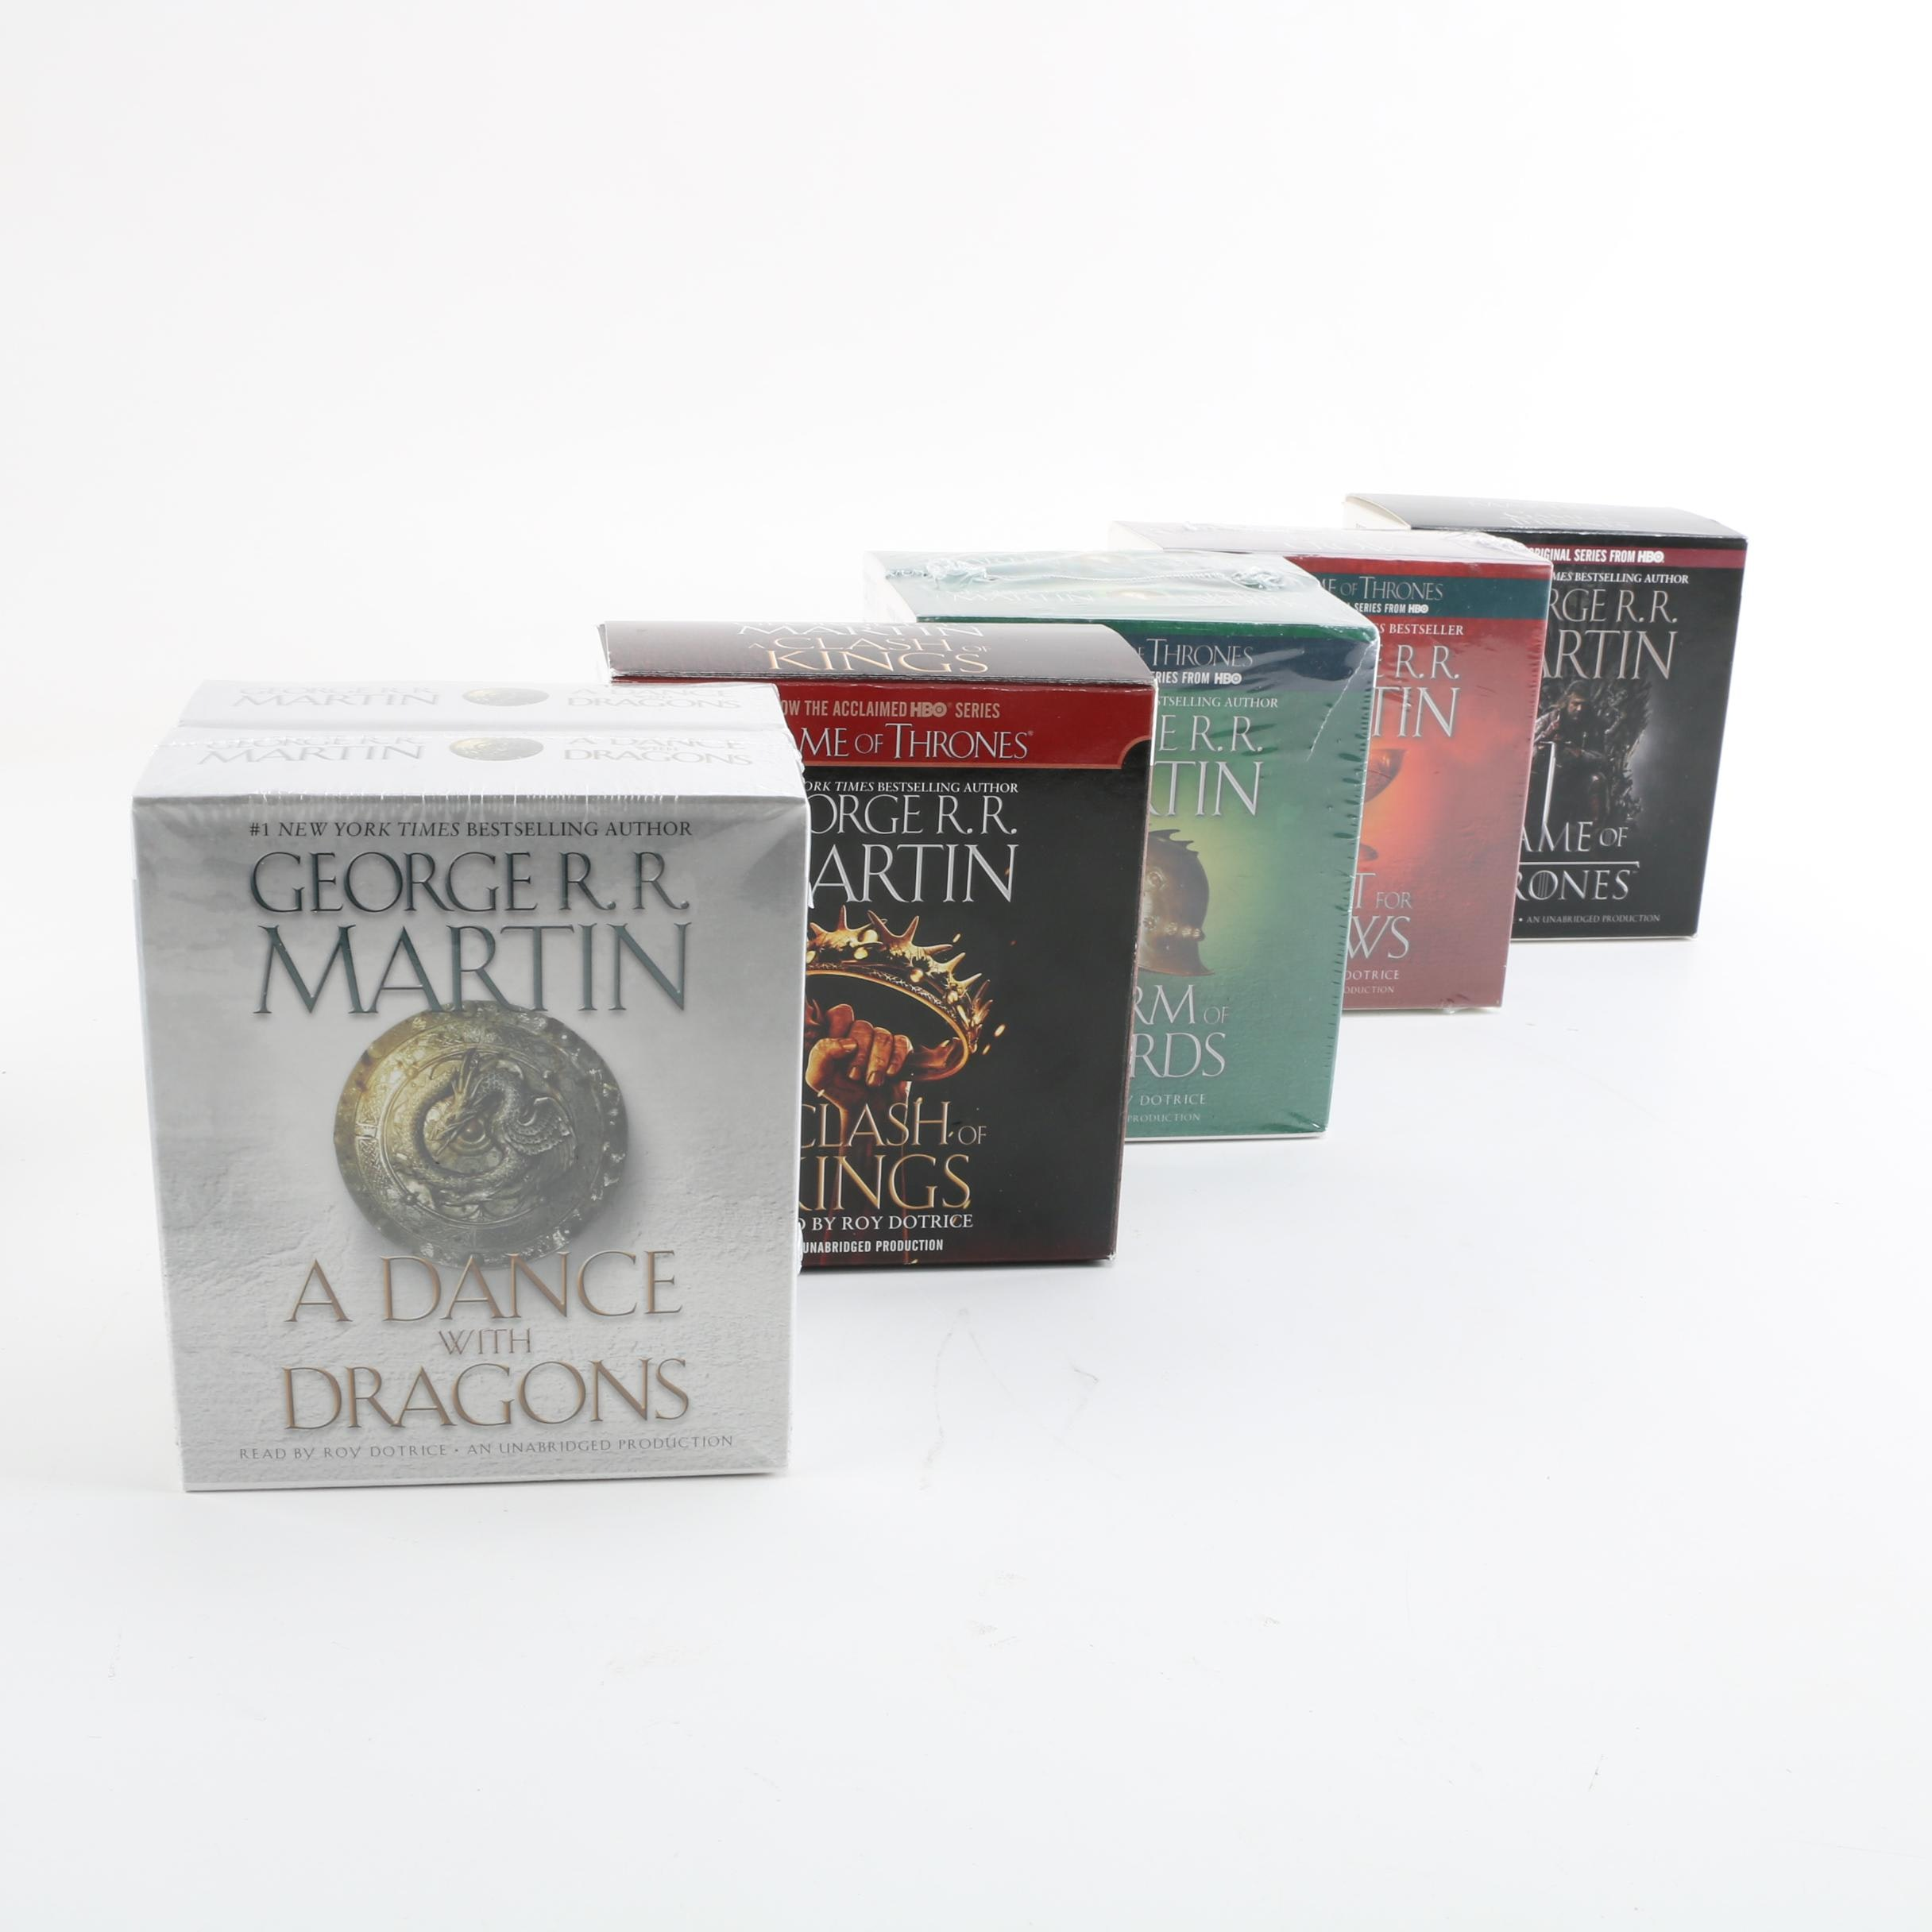 """George R.R. Martin """"Song of Ice and Fire"""" Series (""""Game of Thrones"""") Books on CD"""